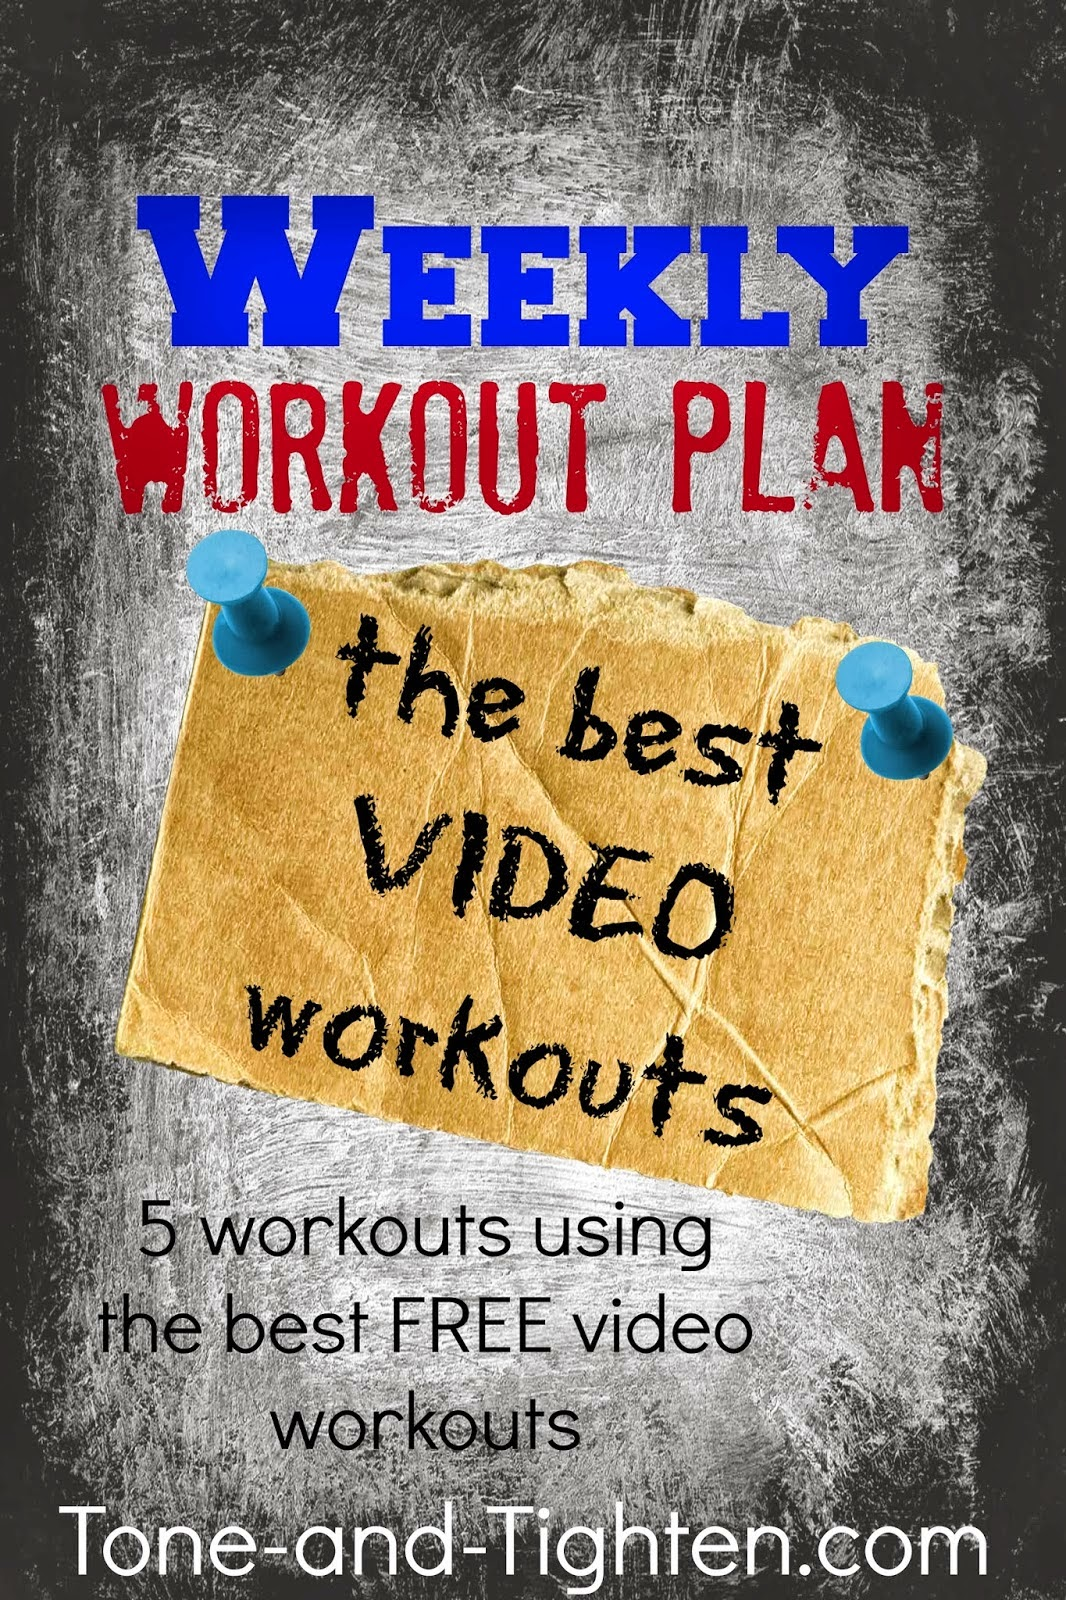 https://tone-and-tighten.com/2014/01/weekly-workout-plan-the-best-video-workouts.html